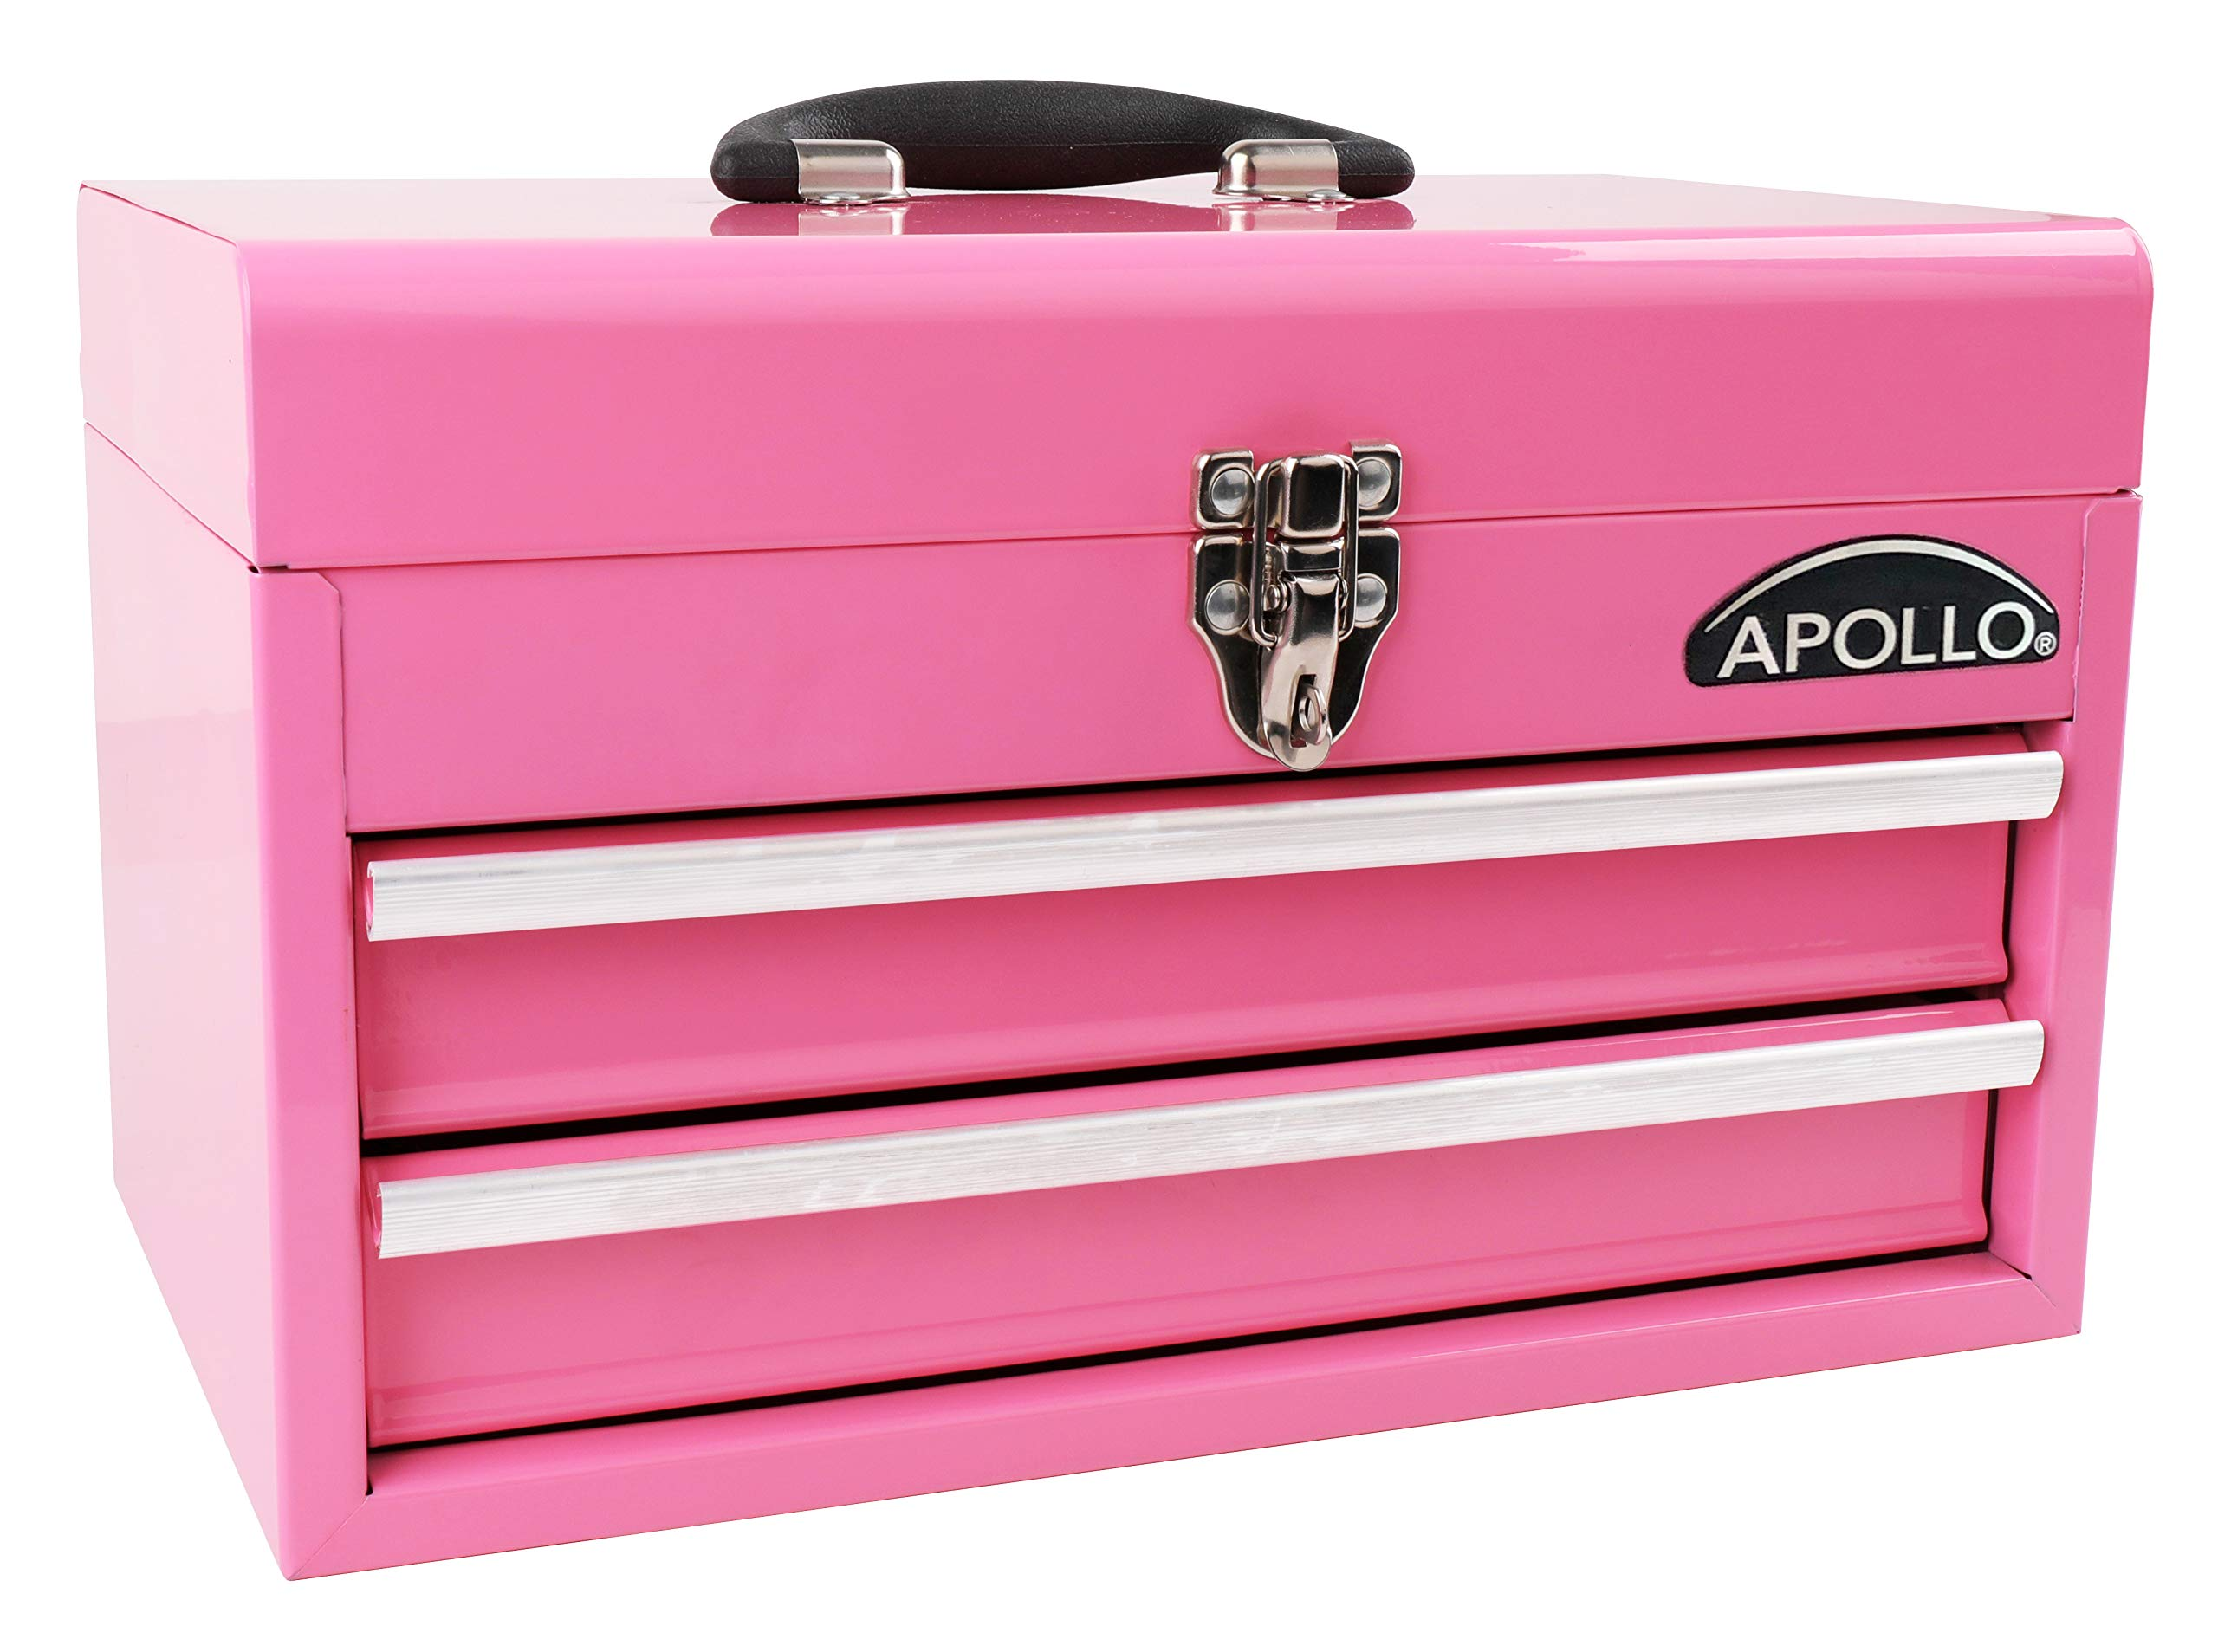 Apollo Tools 2-Drawer Heavy-Duty Steel Chest for Maximum Organization with Ball-Bearing Opening and Powder Coated Finish in Pink DT5010P by Apollo Tools